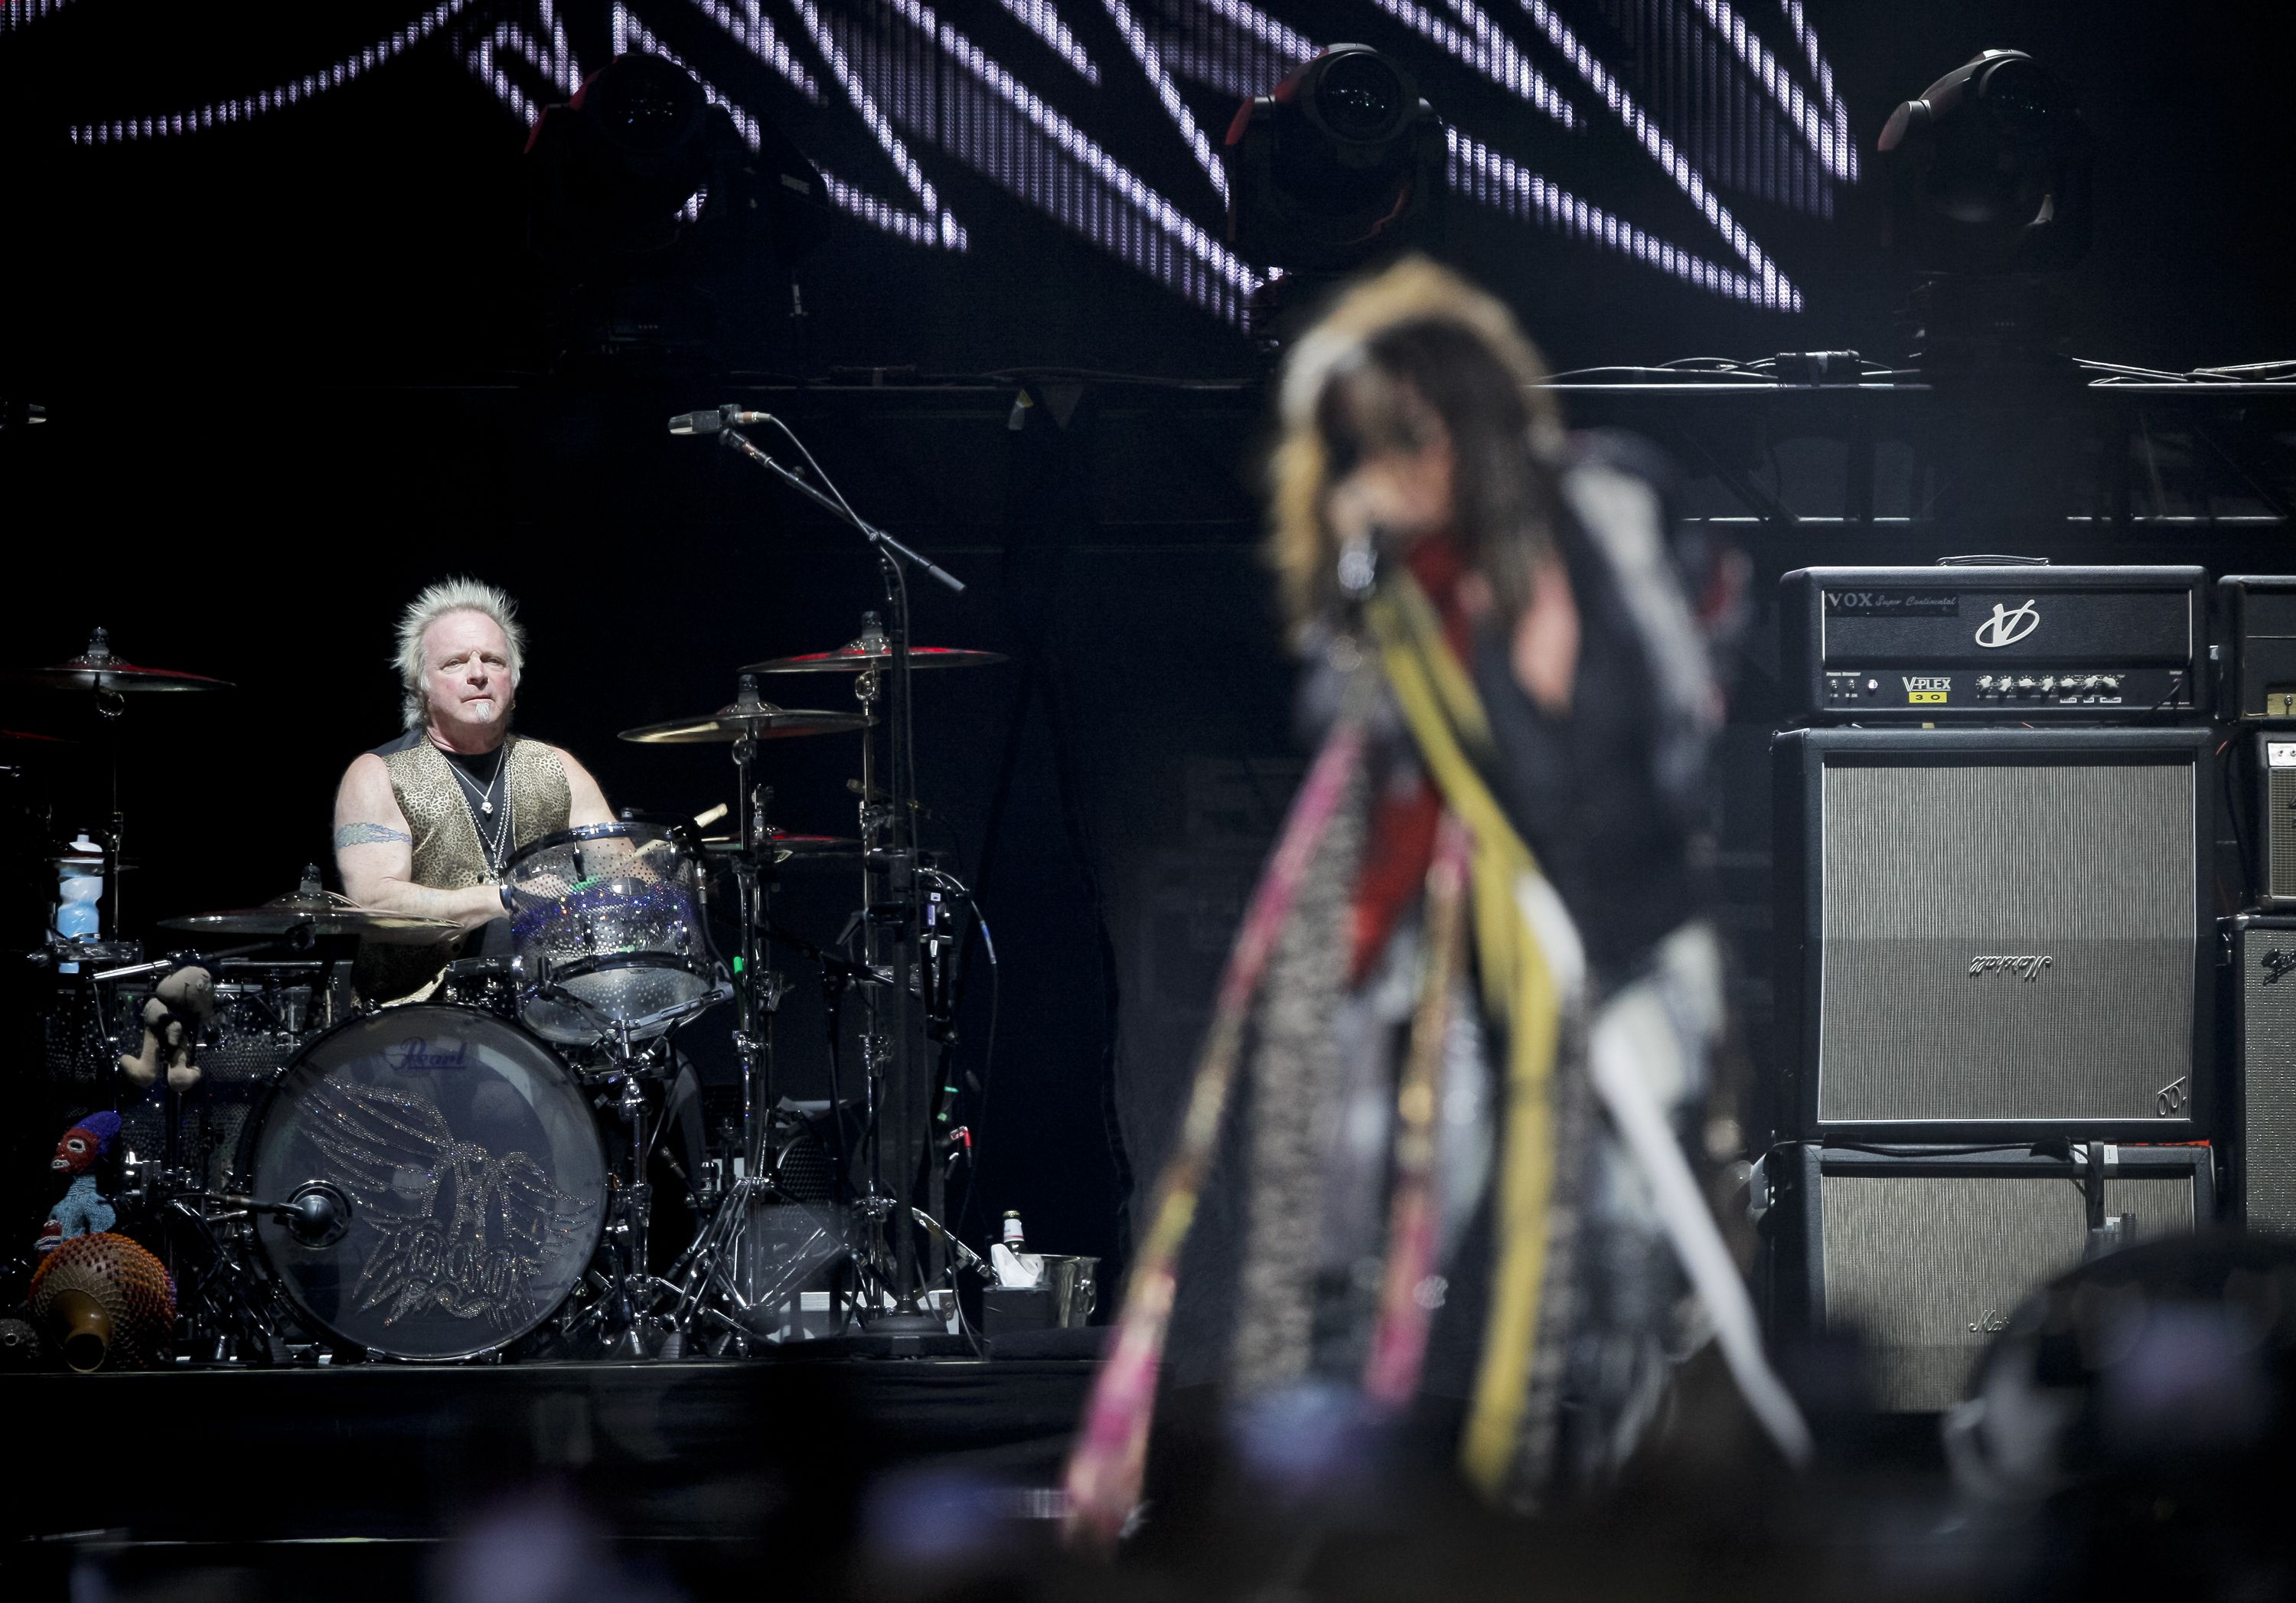 Joey Kramer Has Been Allowed Back in Aerosmith. But Maybe the Drummer Needs Some New Friends.